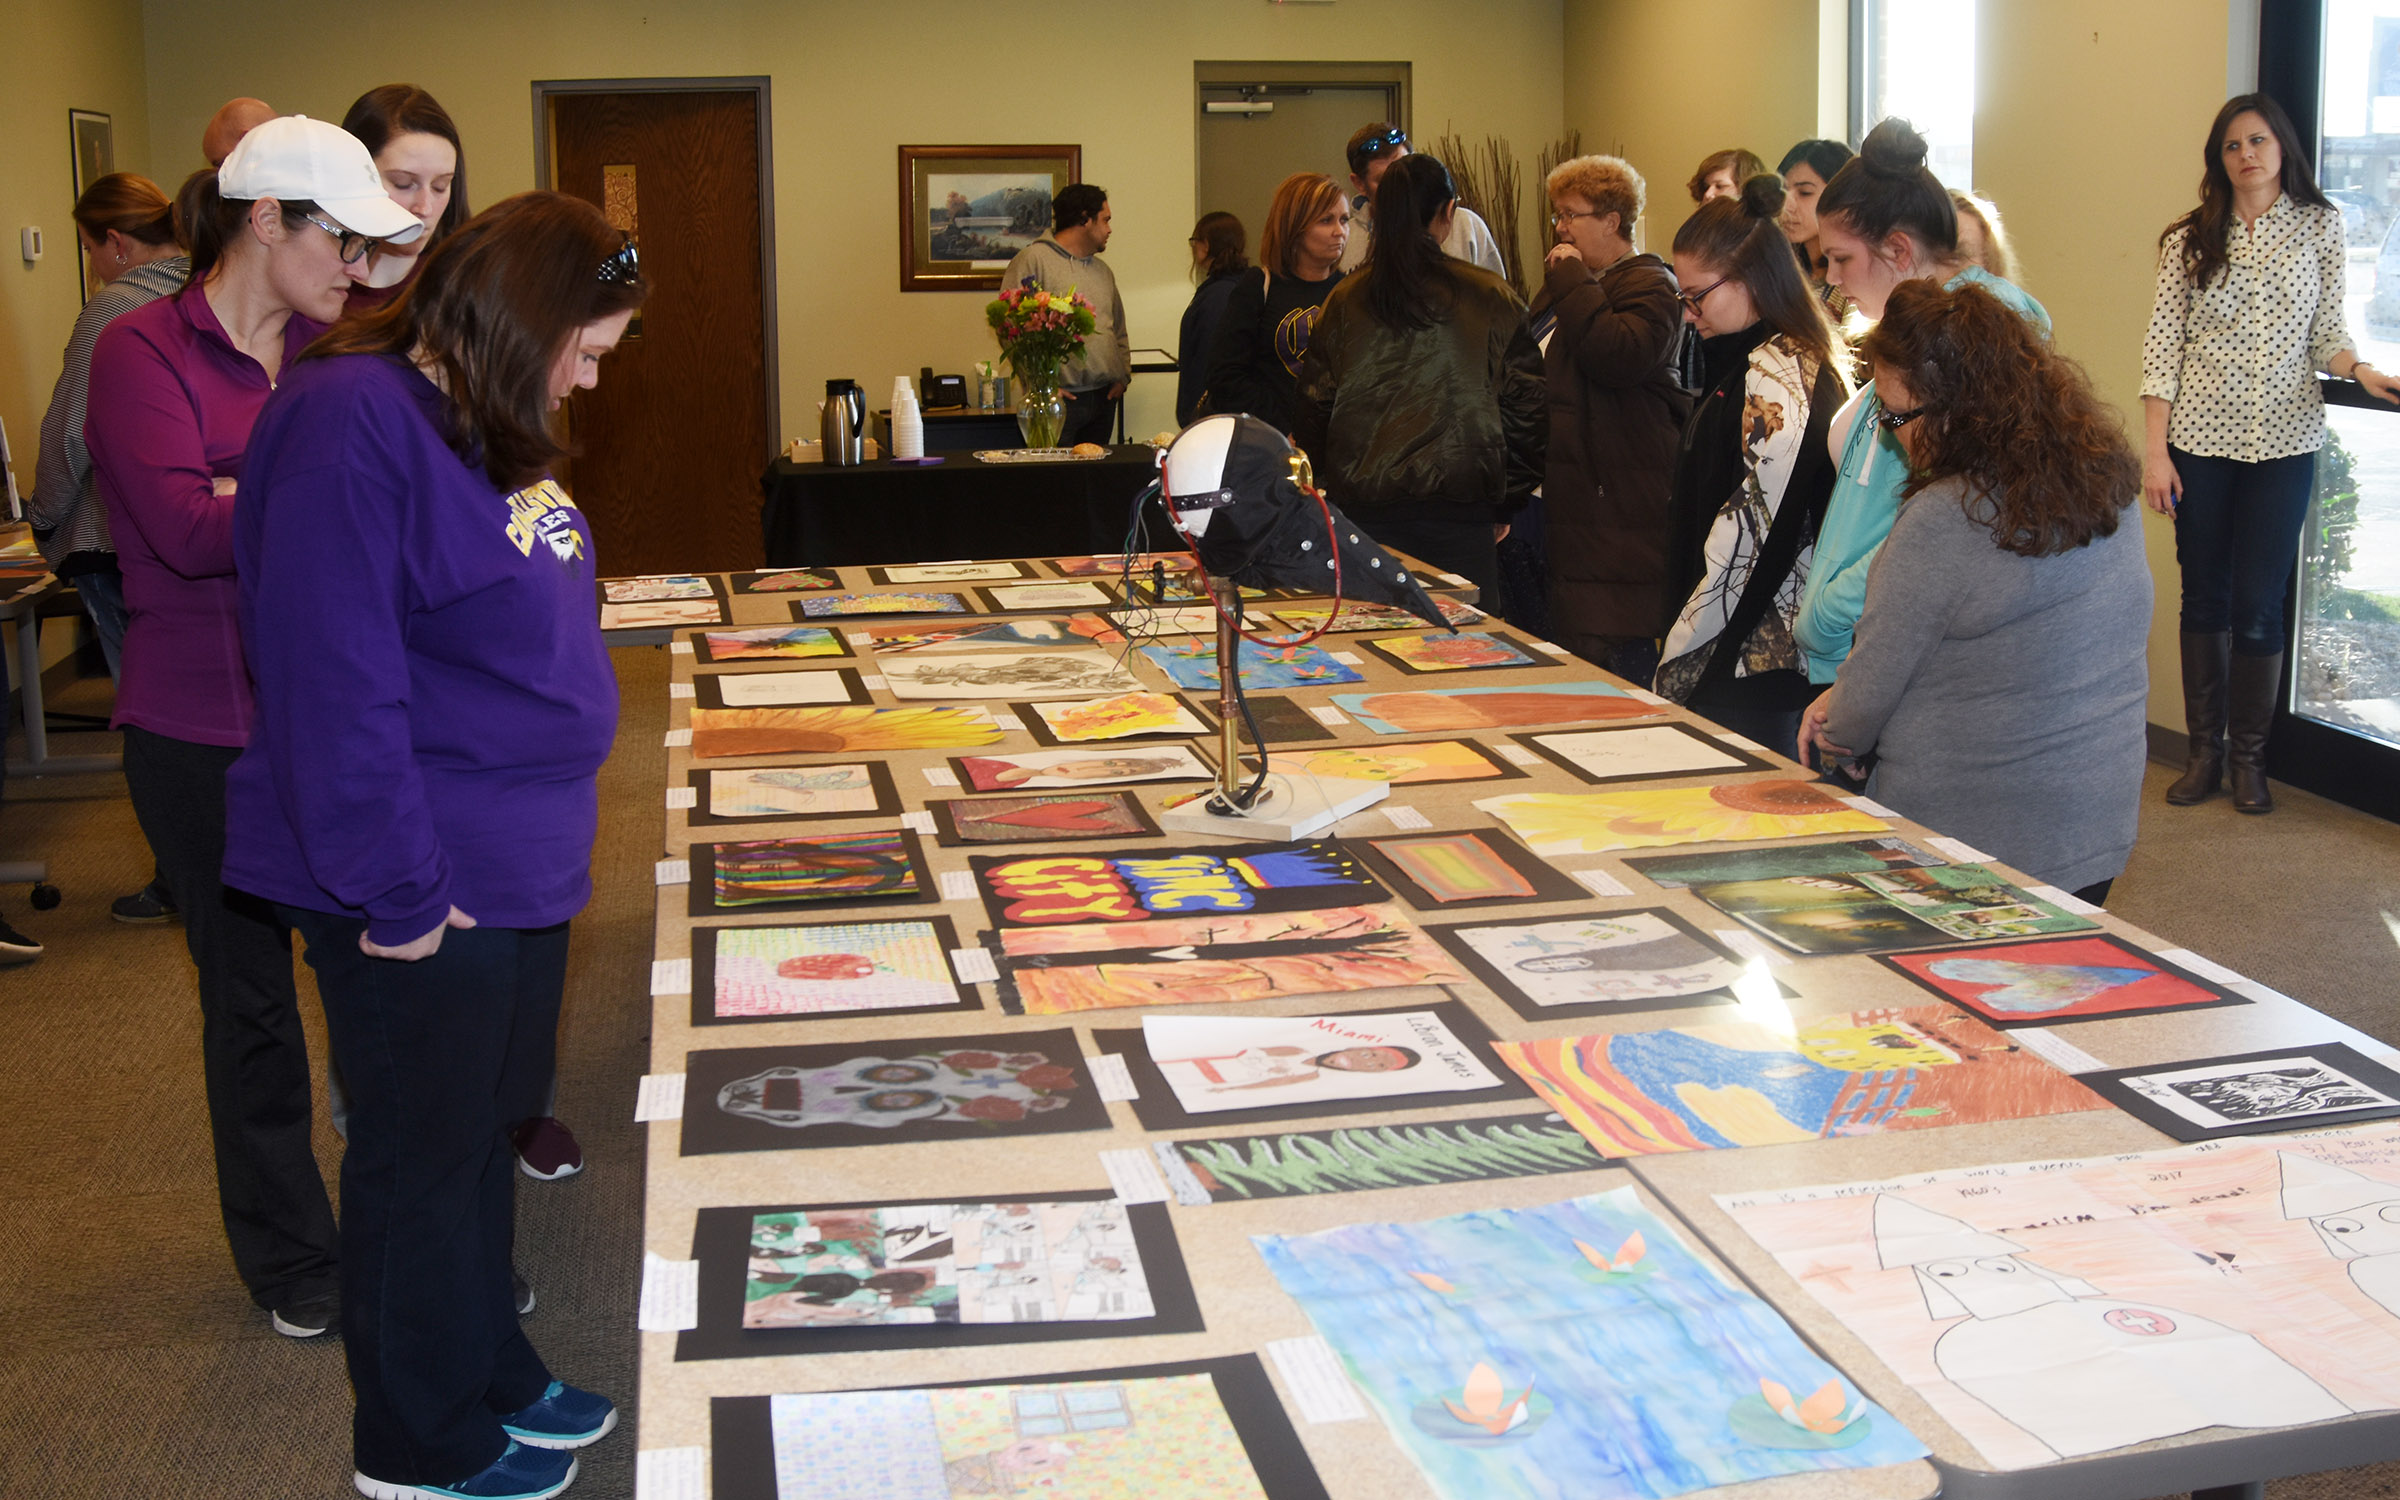 CMS and CHS teachers and students view the artwork on display.